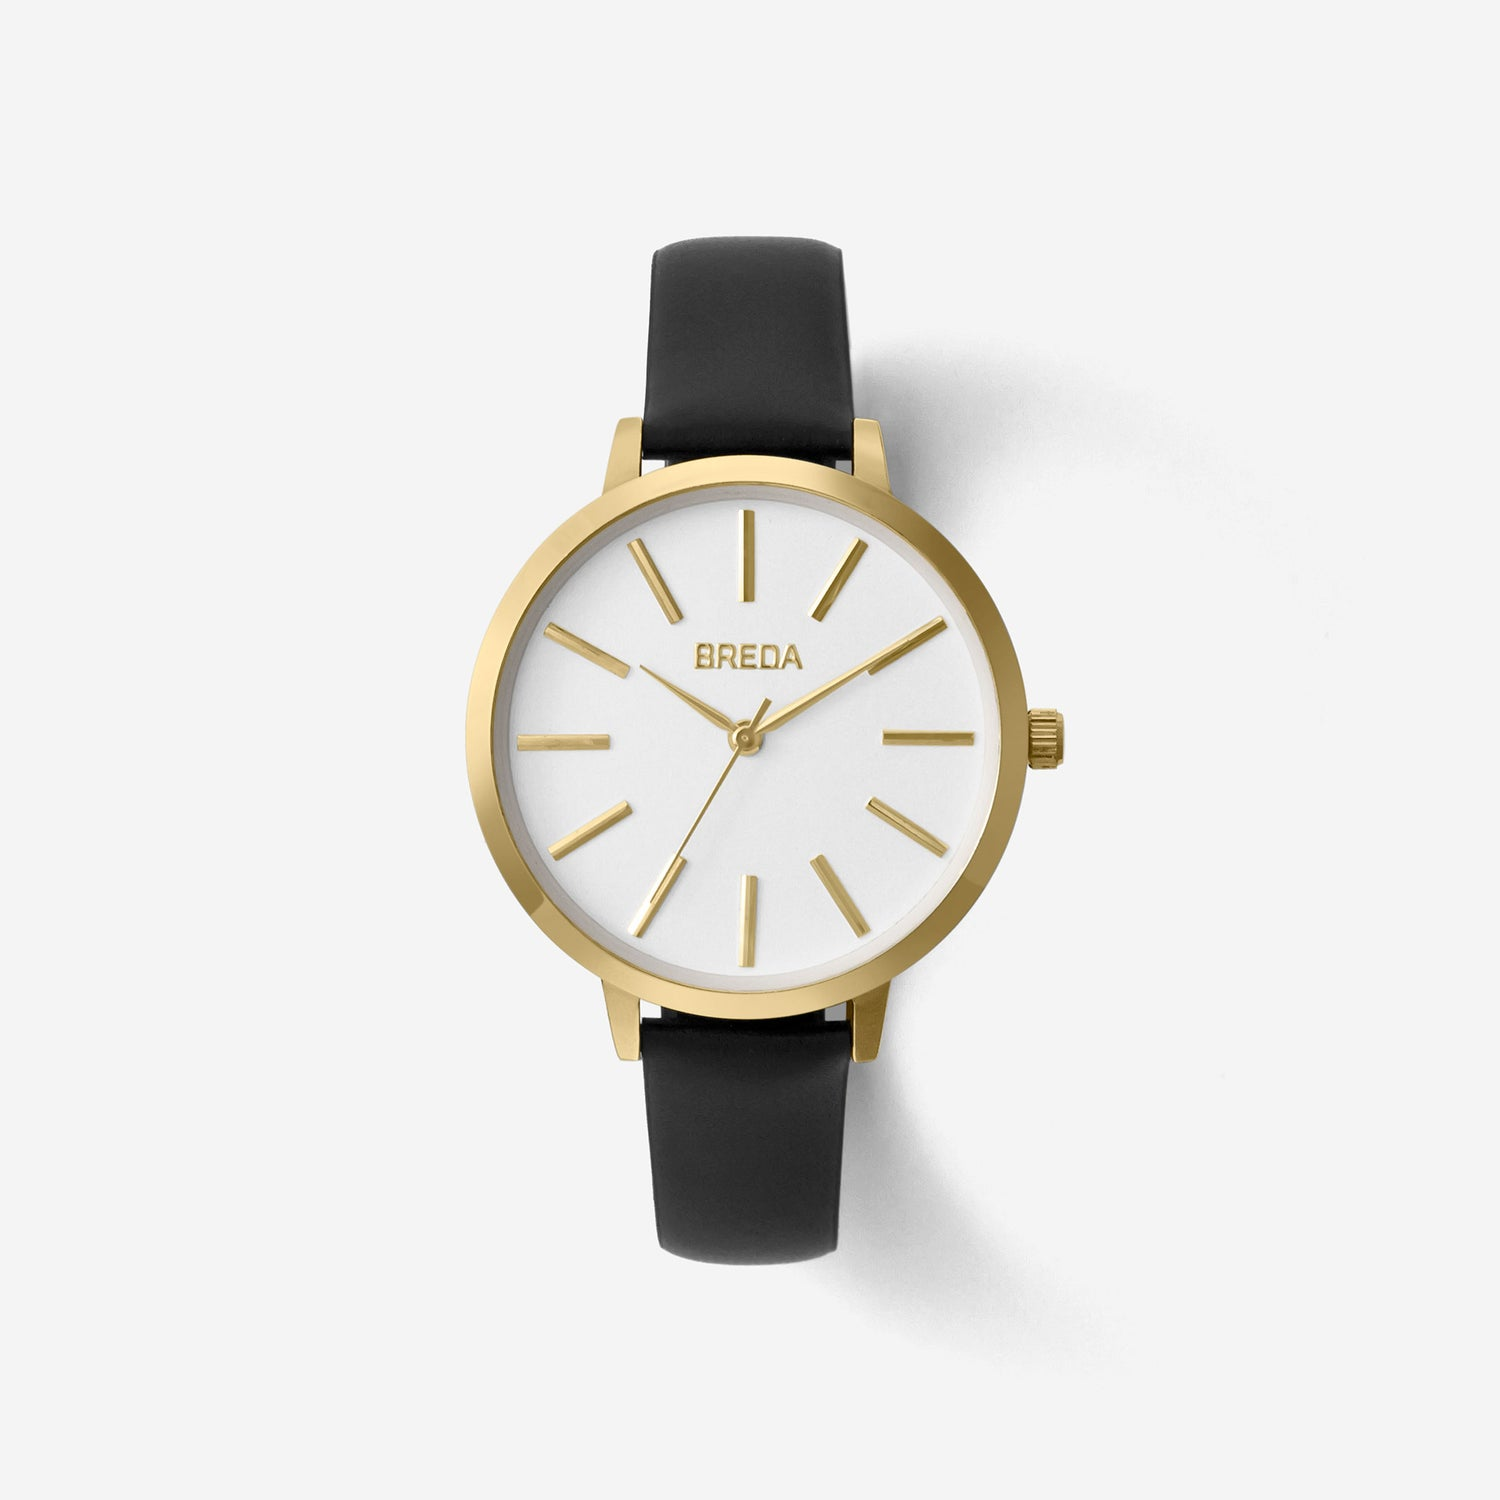 breda-joule-1722a-gold-black-watch-front